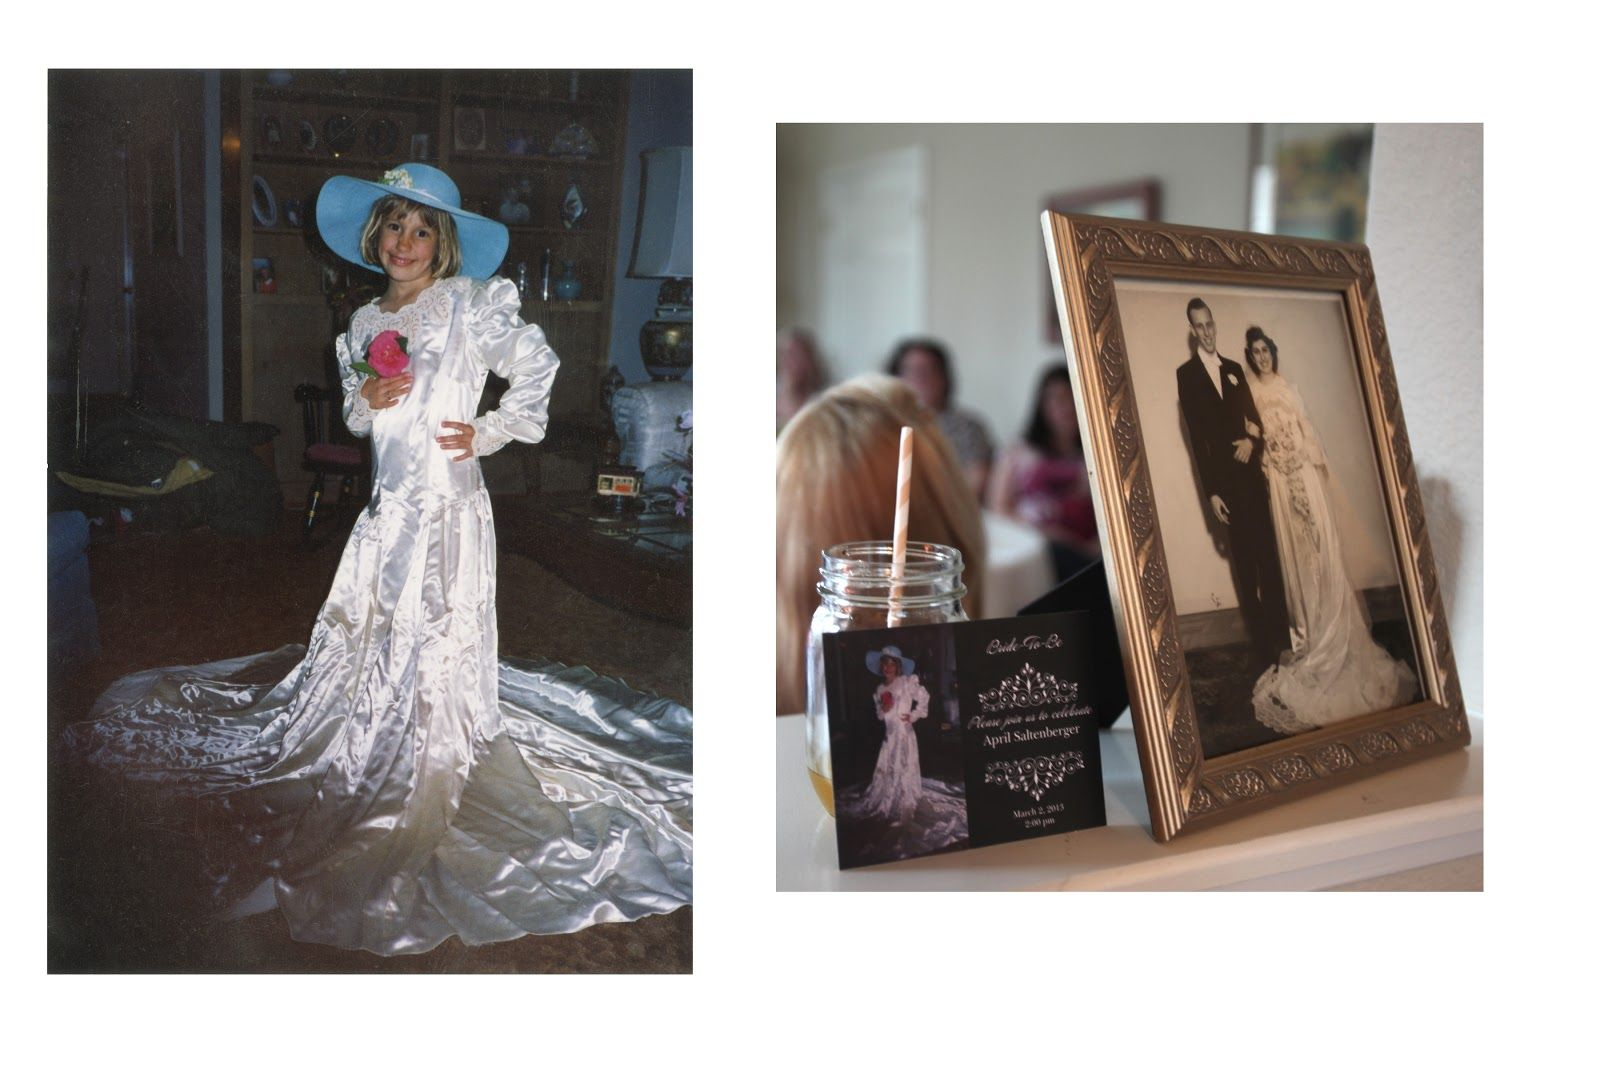 Mother of the bride dresses afternoon wedding  My sister took a photo in our grandmotherus wedding dress when she